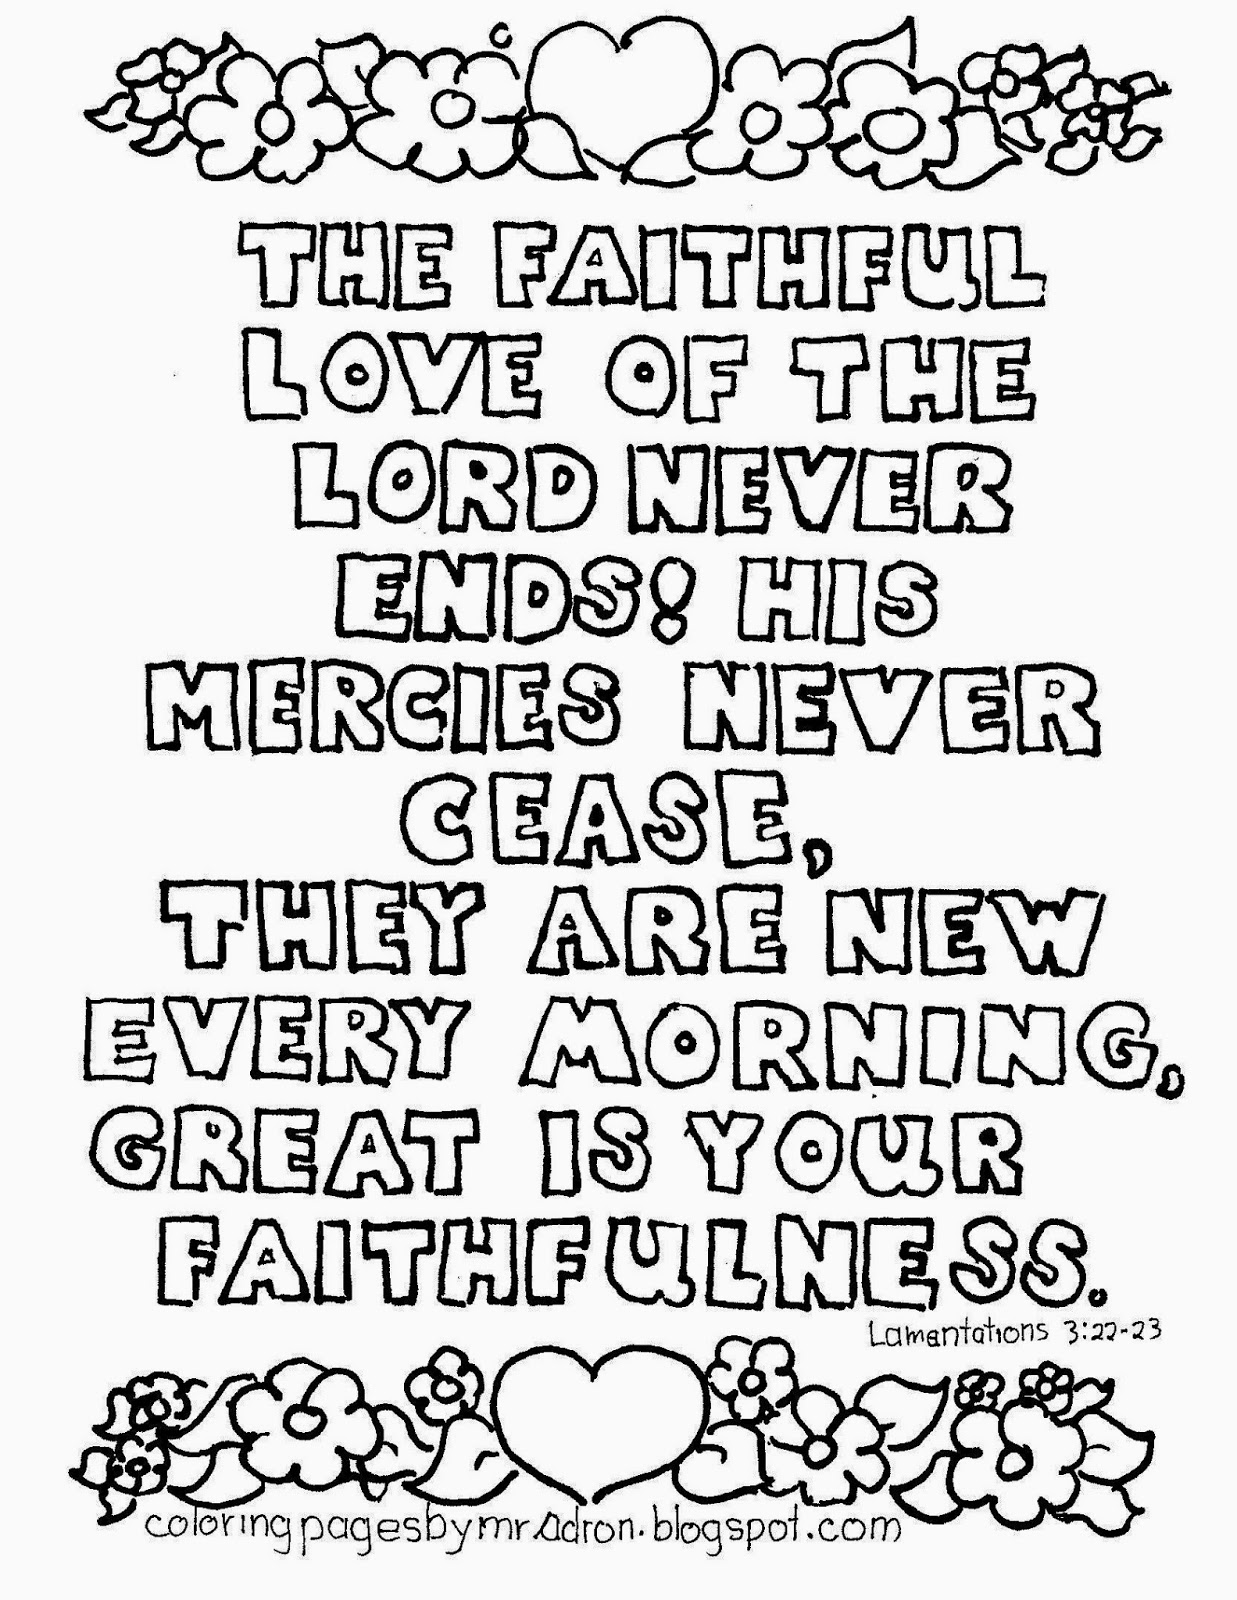 An illustration for Lamentations 3:22-23 to print and color.